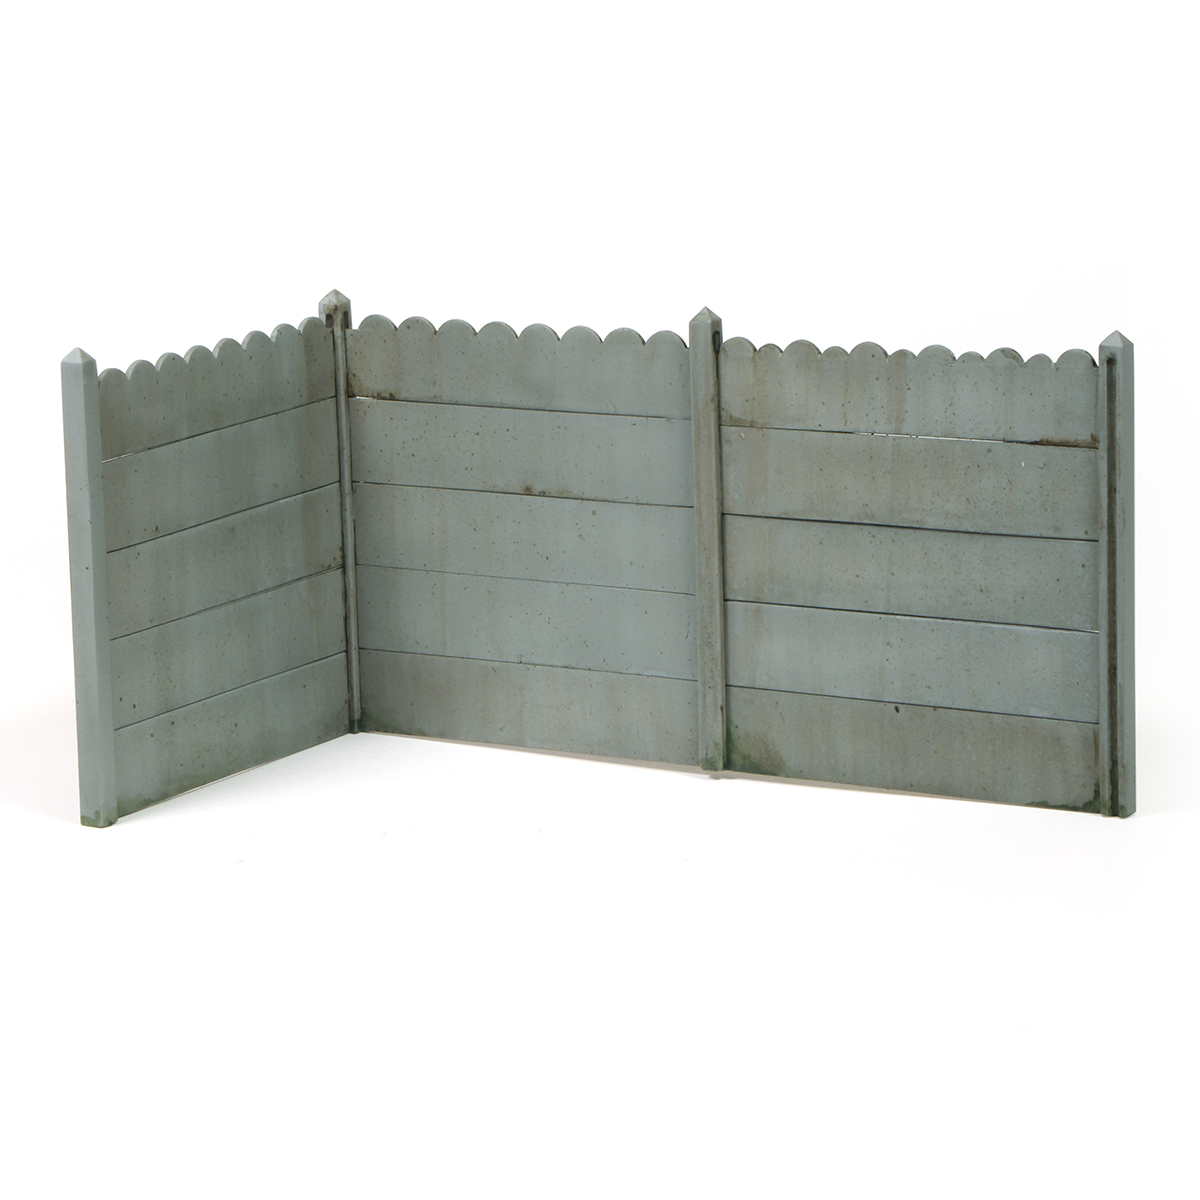 Concrete Fence (Type 1)